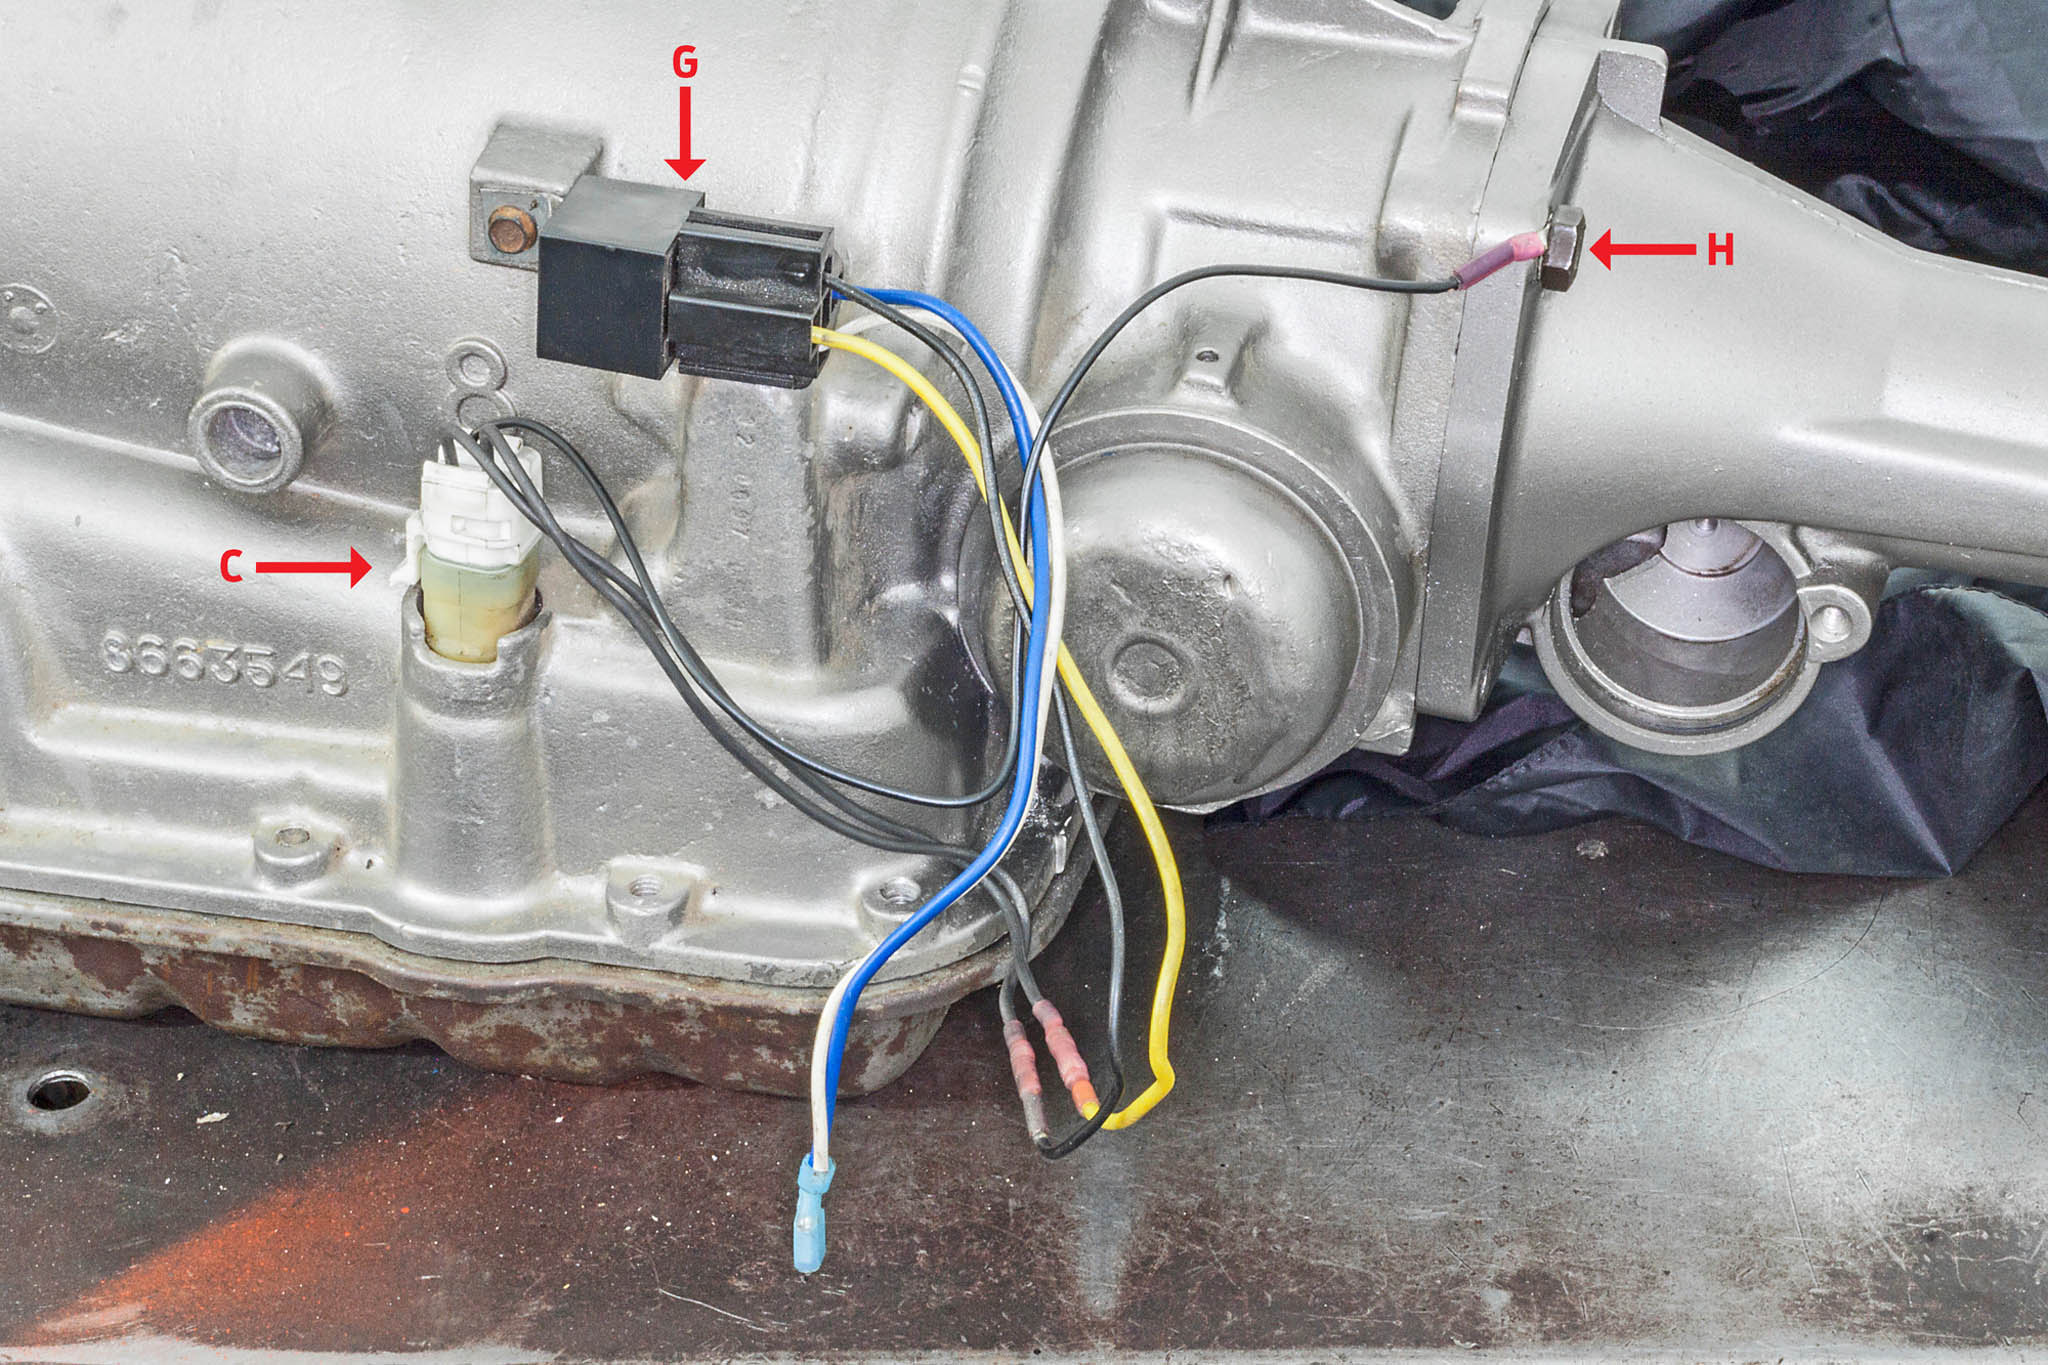 gm 700r4 wiring diagram 700r4 wiring harness e2 wiring diagram  700r4 wiring harness e2 wiring diagram